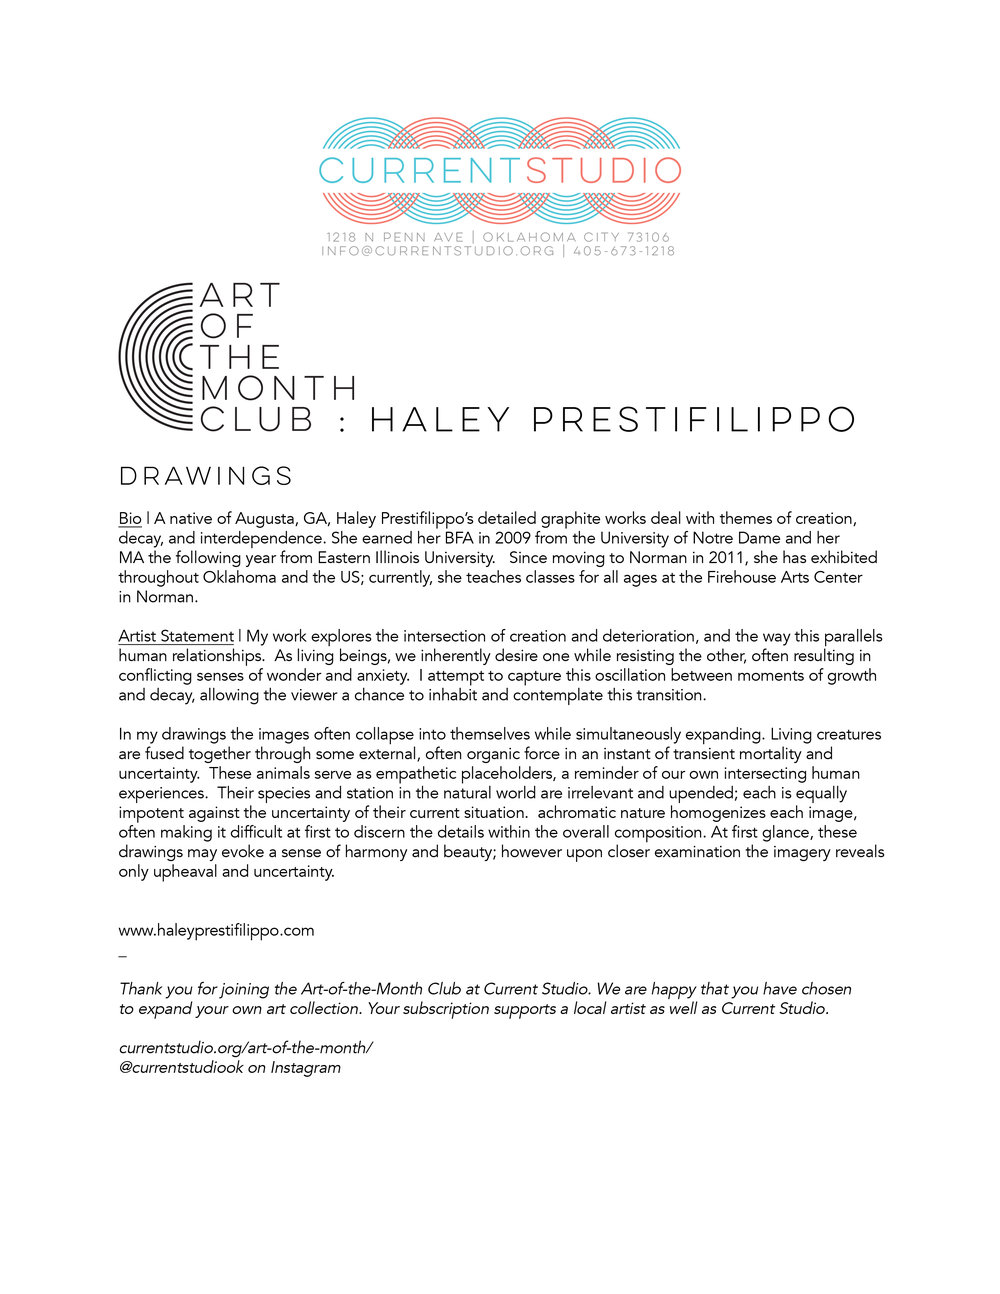 art of the month artist sheet - haley prestifilippo.jpg